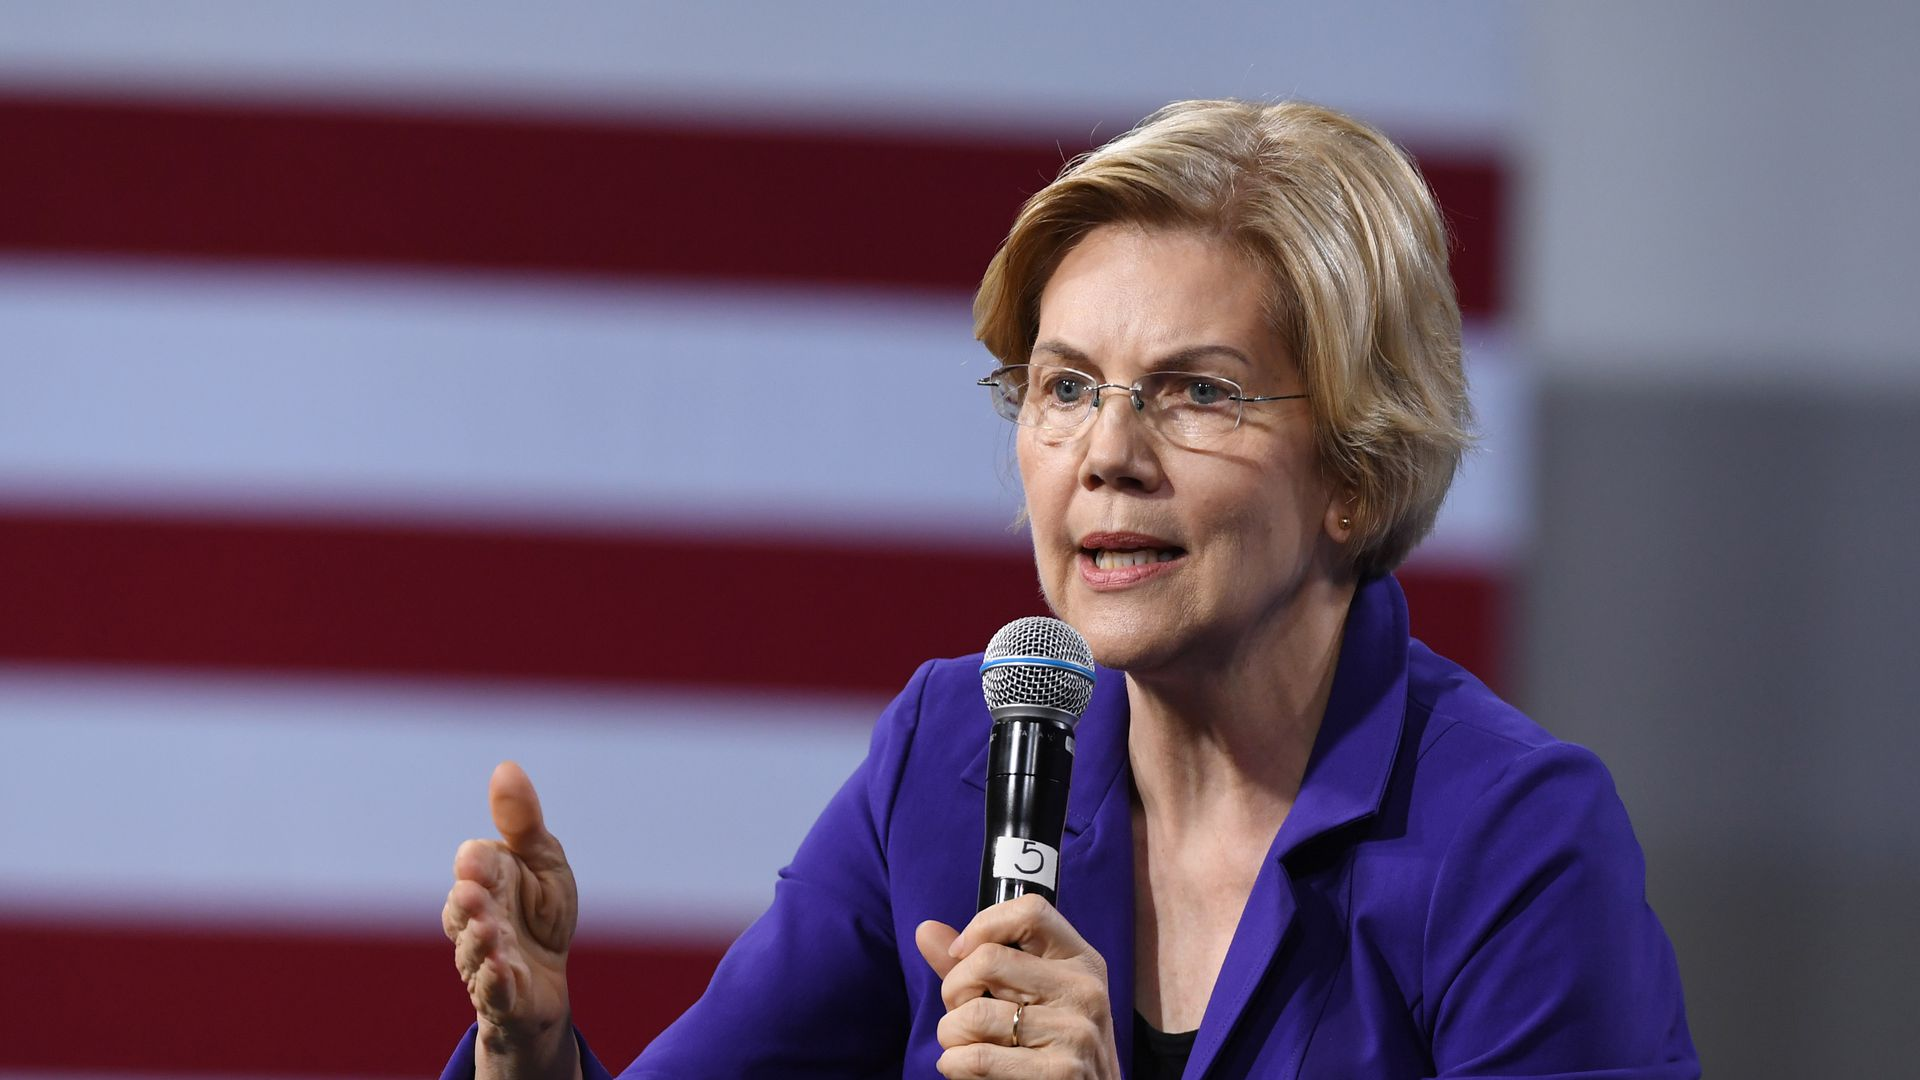 Democratic presidential hopeful Elizabeth Warren was scathing in her criticism for JPMorgan Chase.